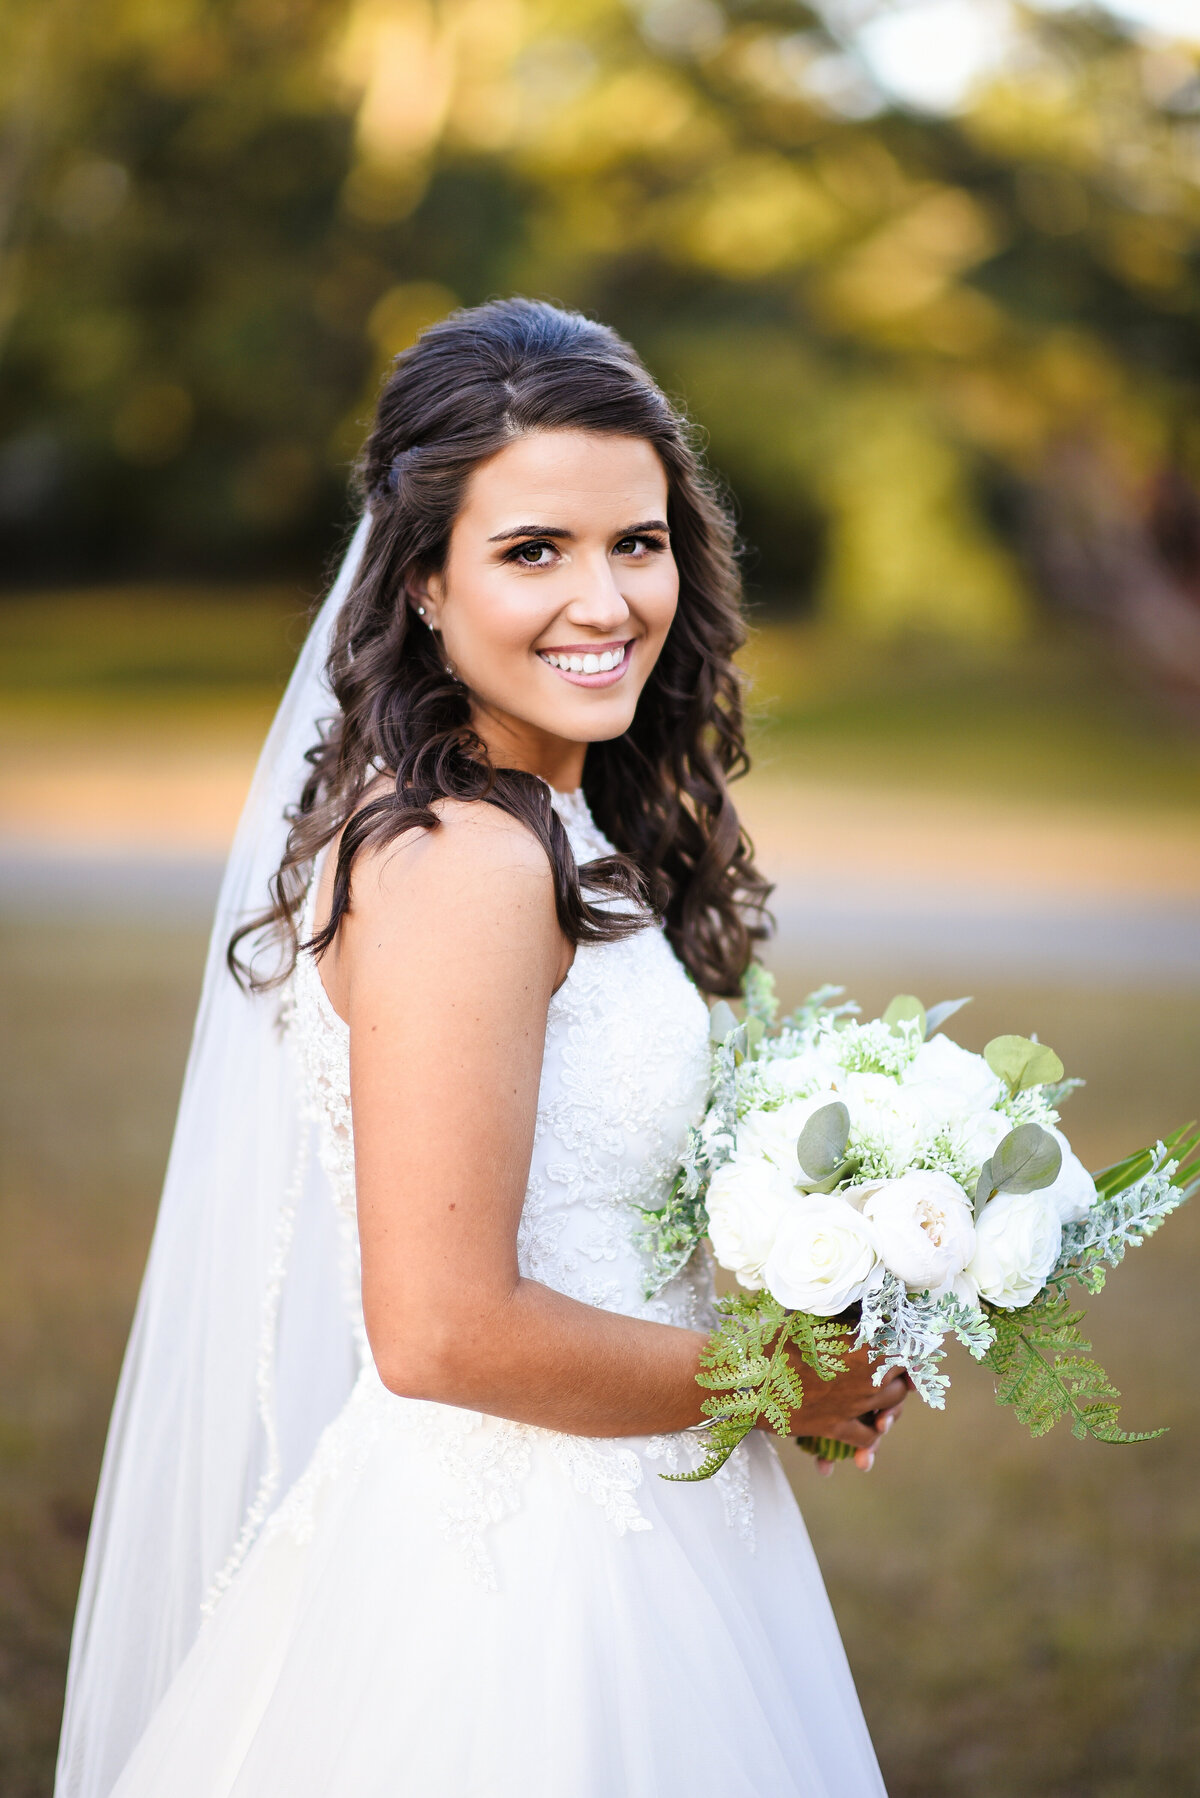 Beautiful bridal portrait photography: Bride turns to the camera outdoors in Mississippi